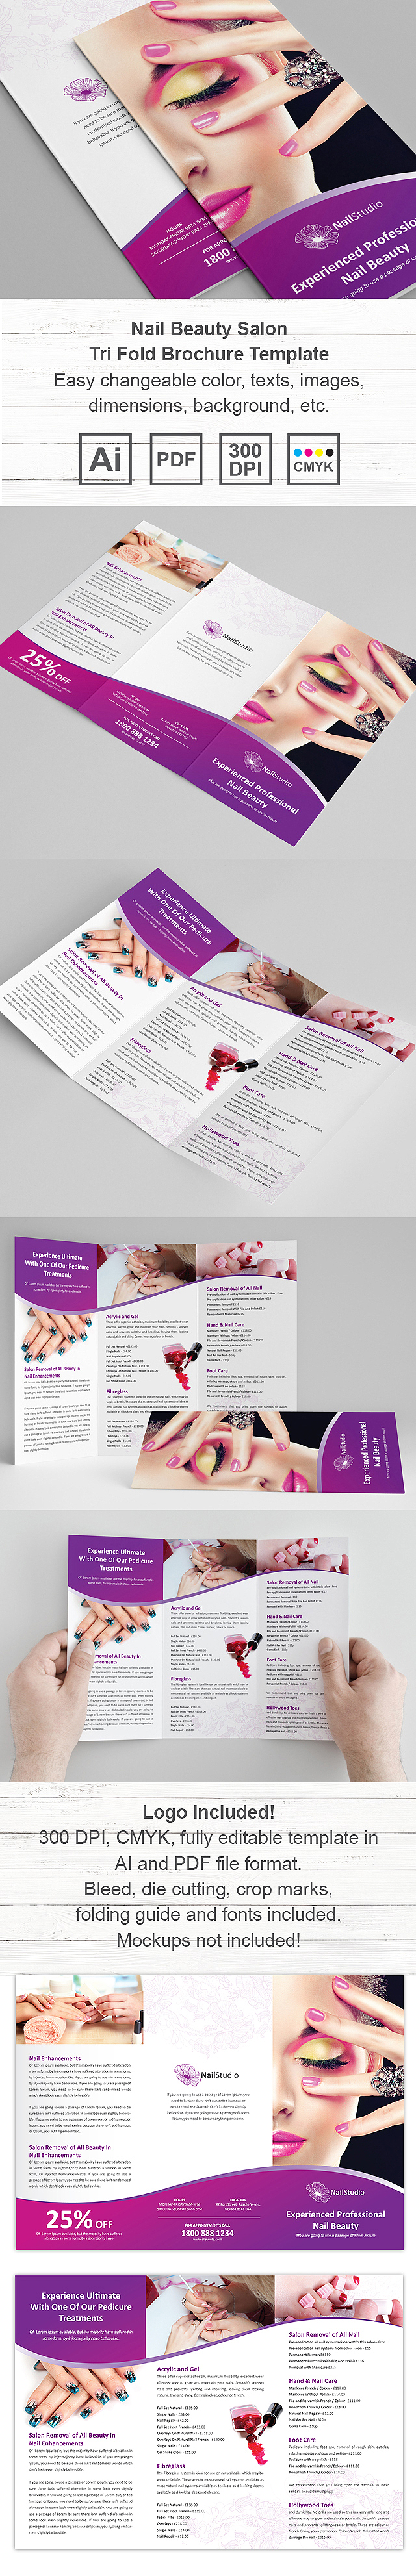 Salon Brochure. Creactive Hari Salon Brochure 25+ Salon Brochure